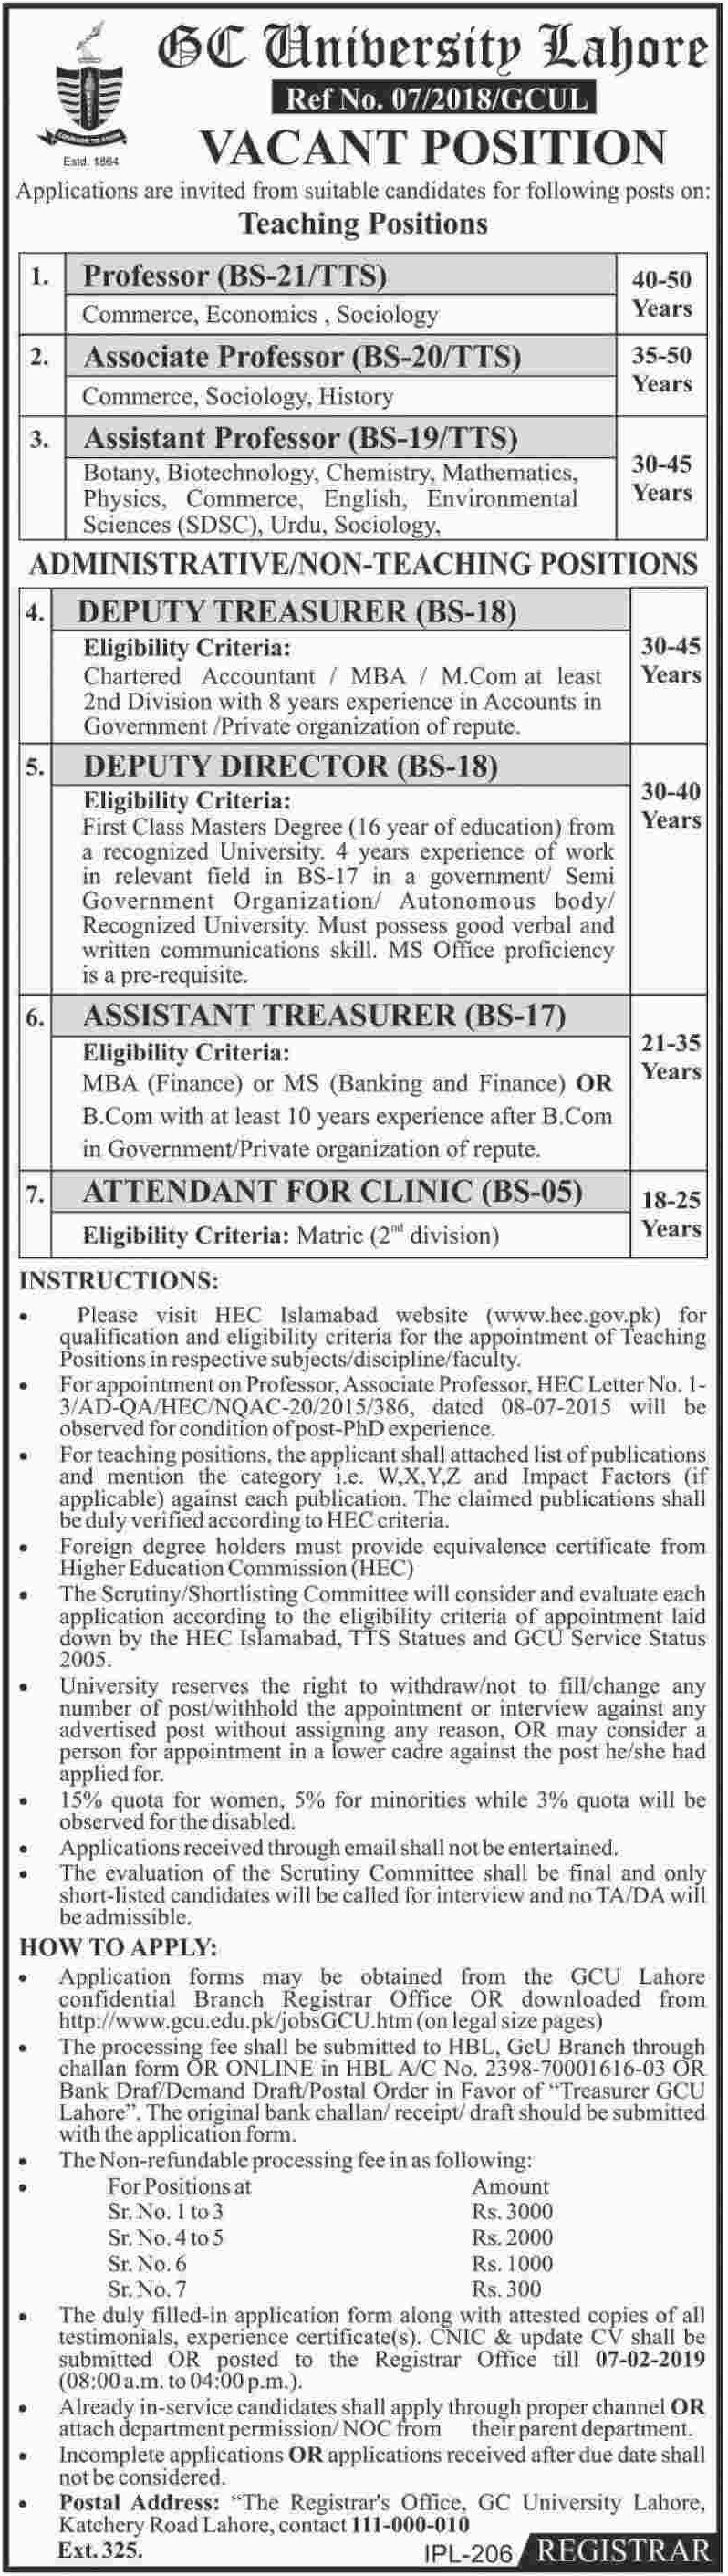 GC University Lahore Jobs 2019 Latest